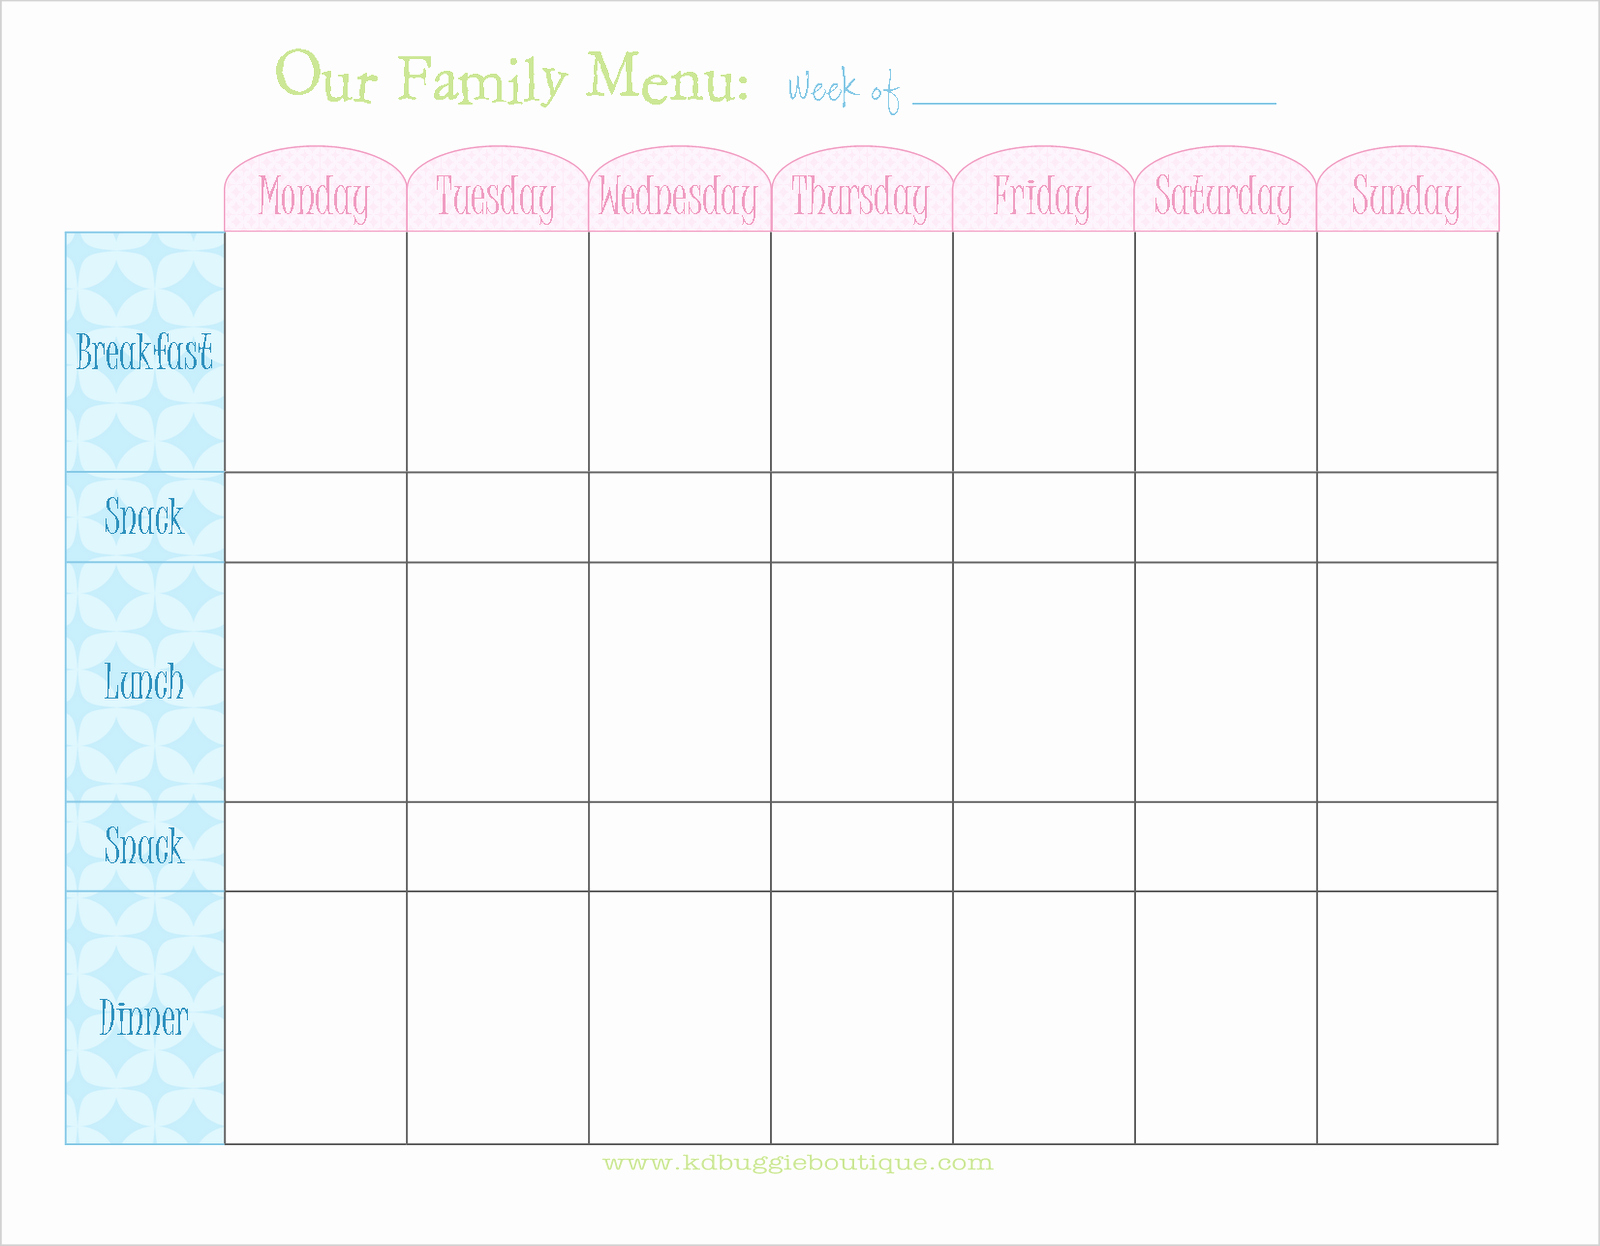 Free Menu Plan Template Lovely Freebie Weekly Menu Planner Download Naturally Creative